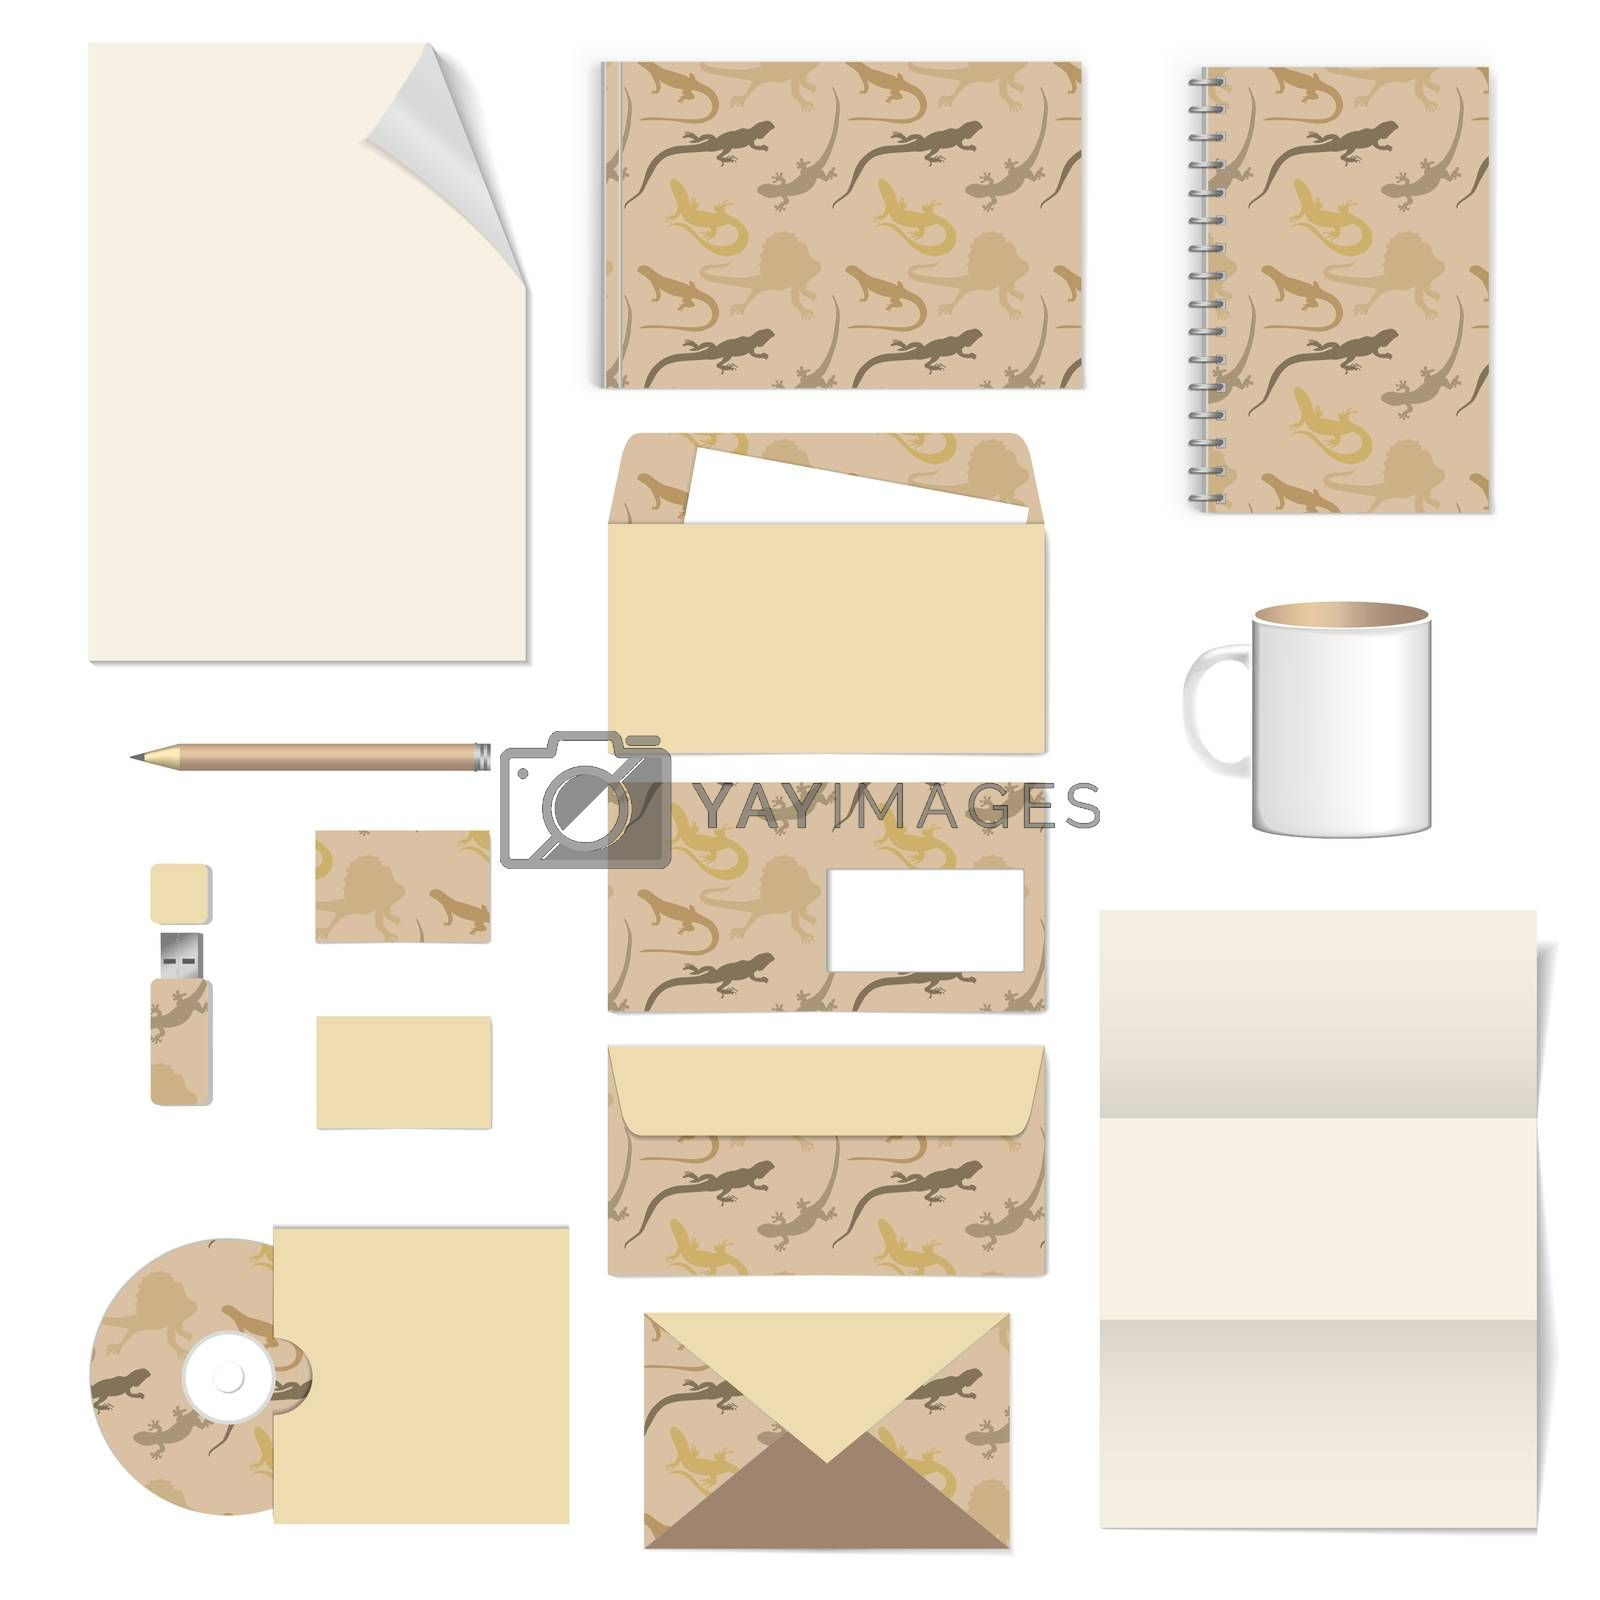 corporate identity. stationery template design. Documentation for business. Vector illustration